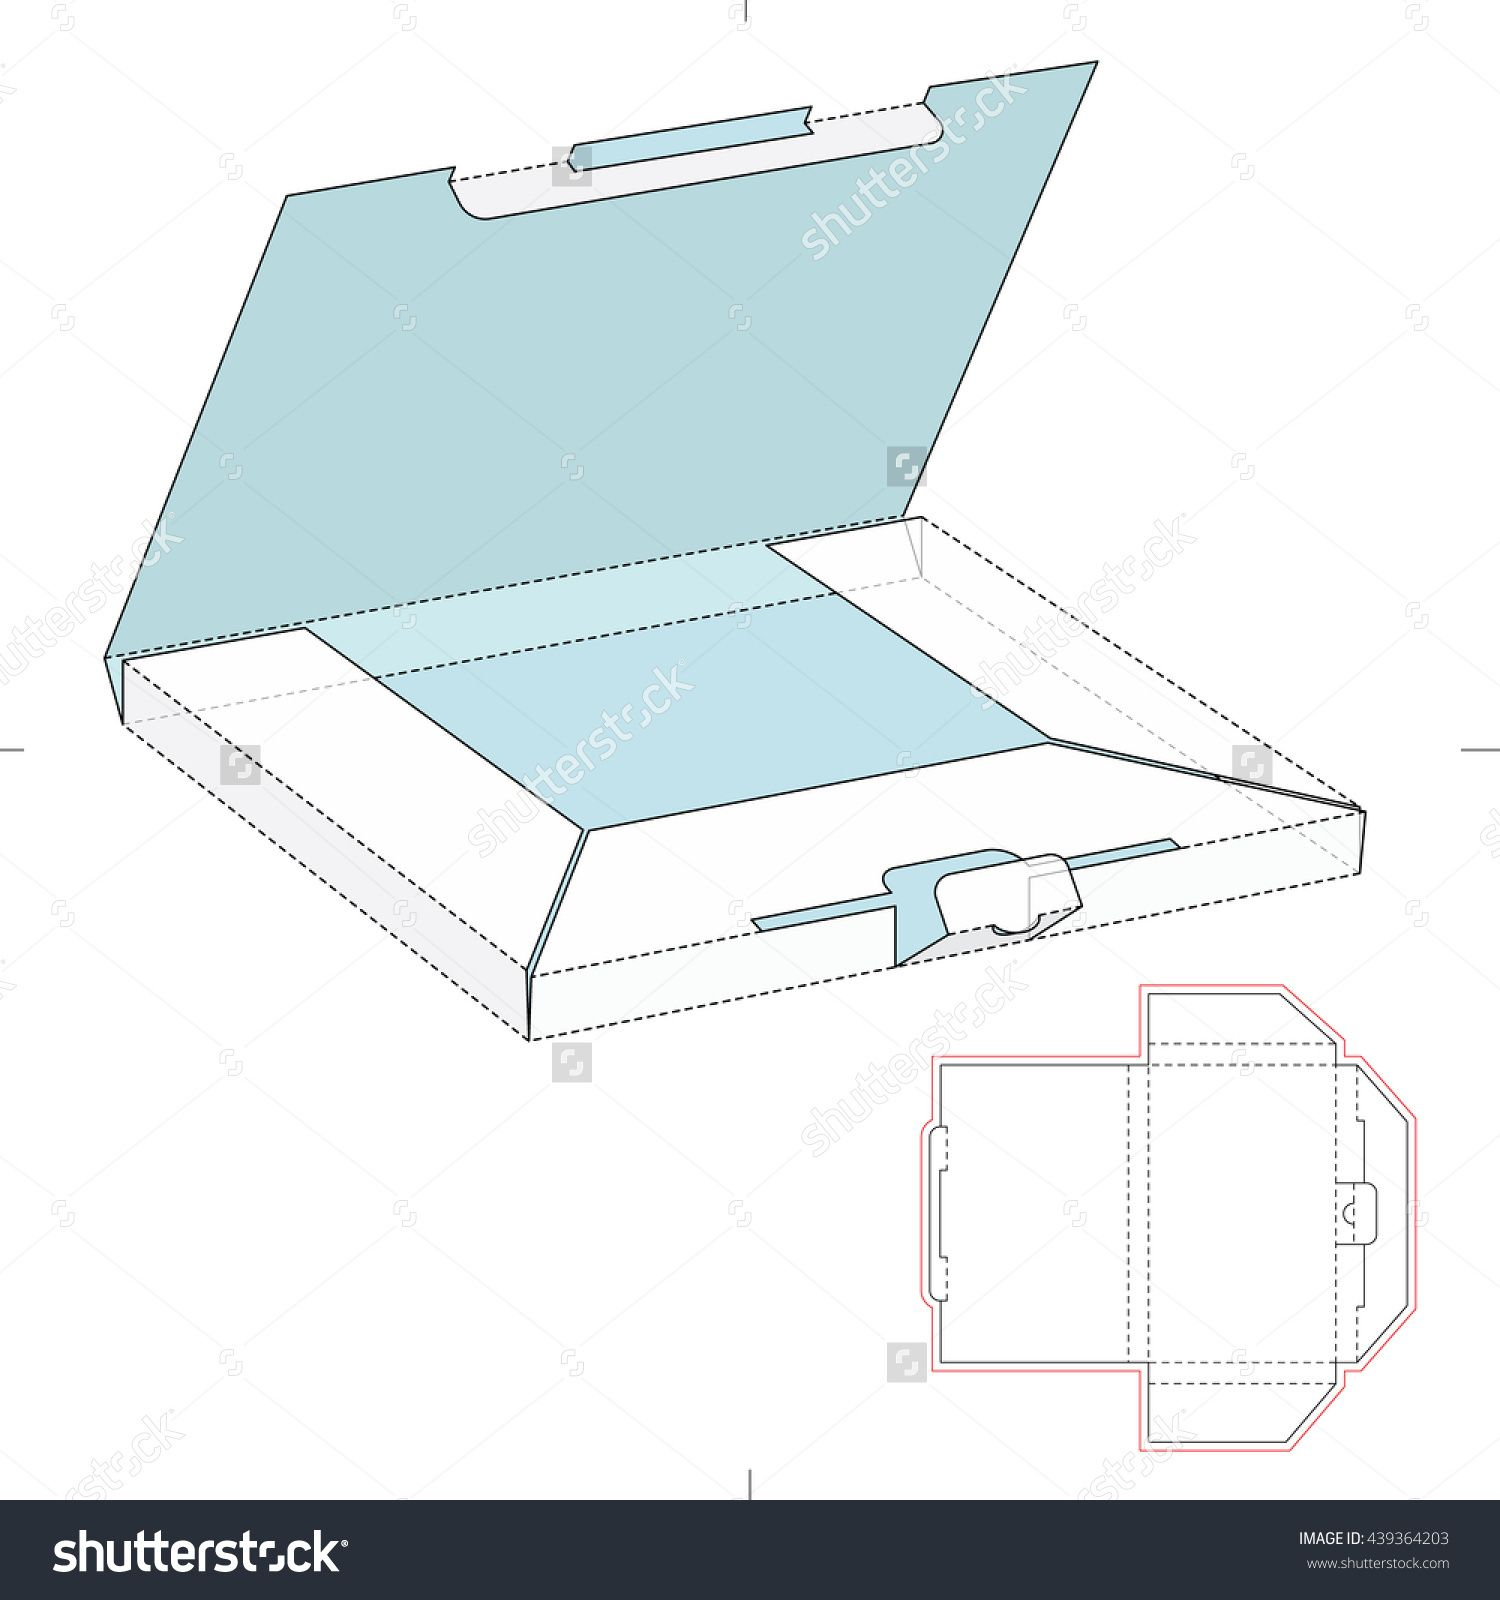 Mailer Box With Blueprint Template Stock Vector Illustration ...